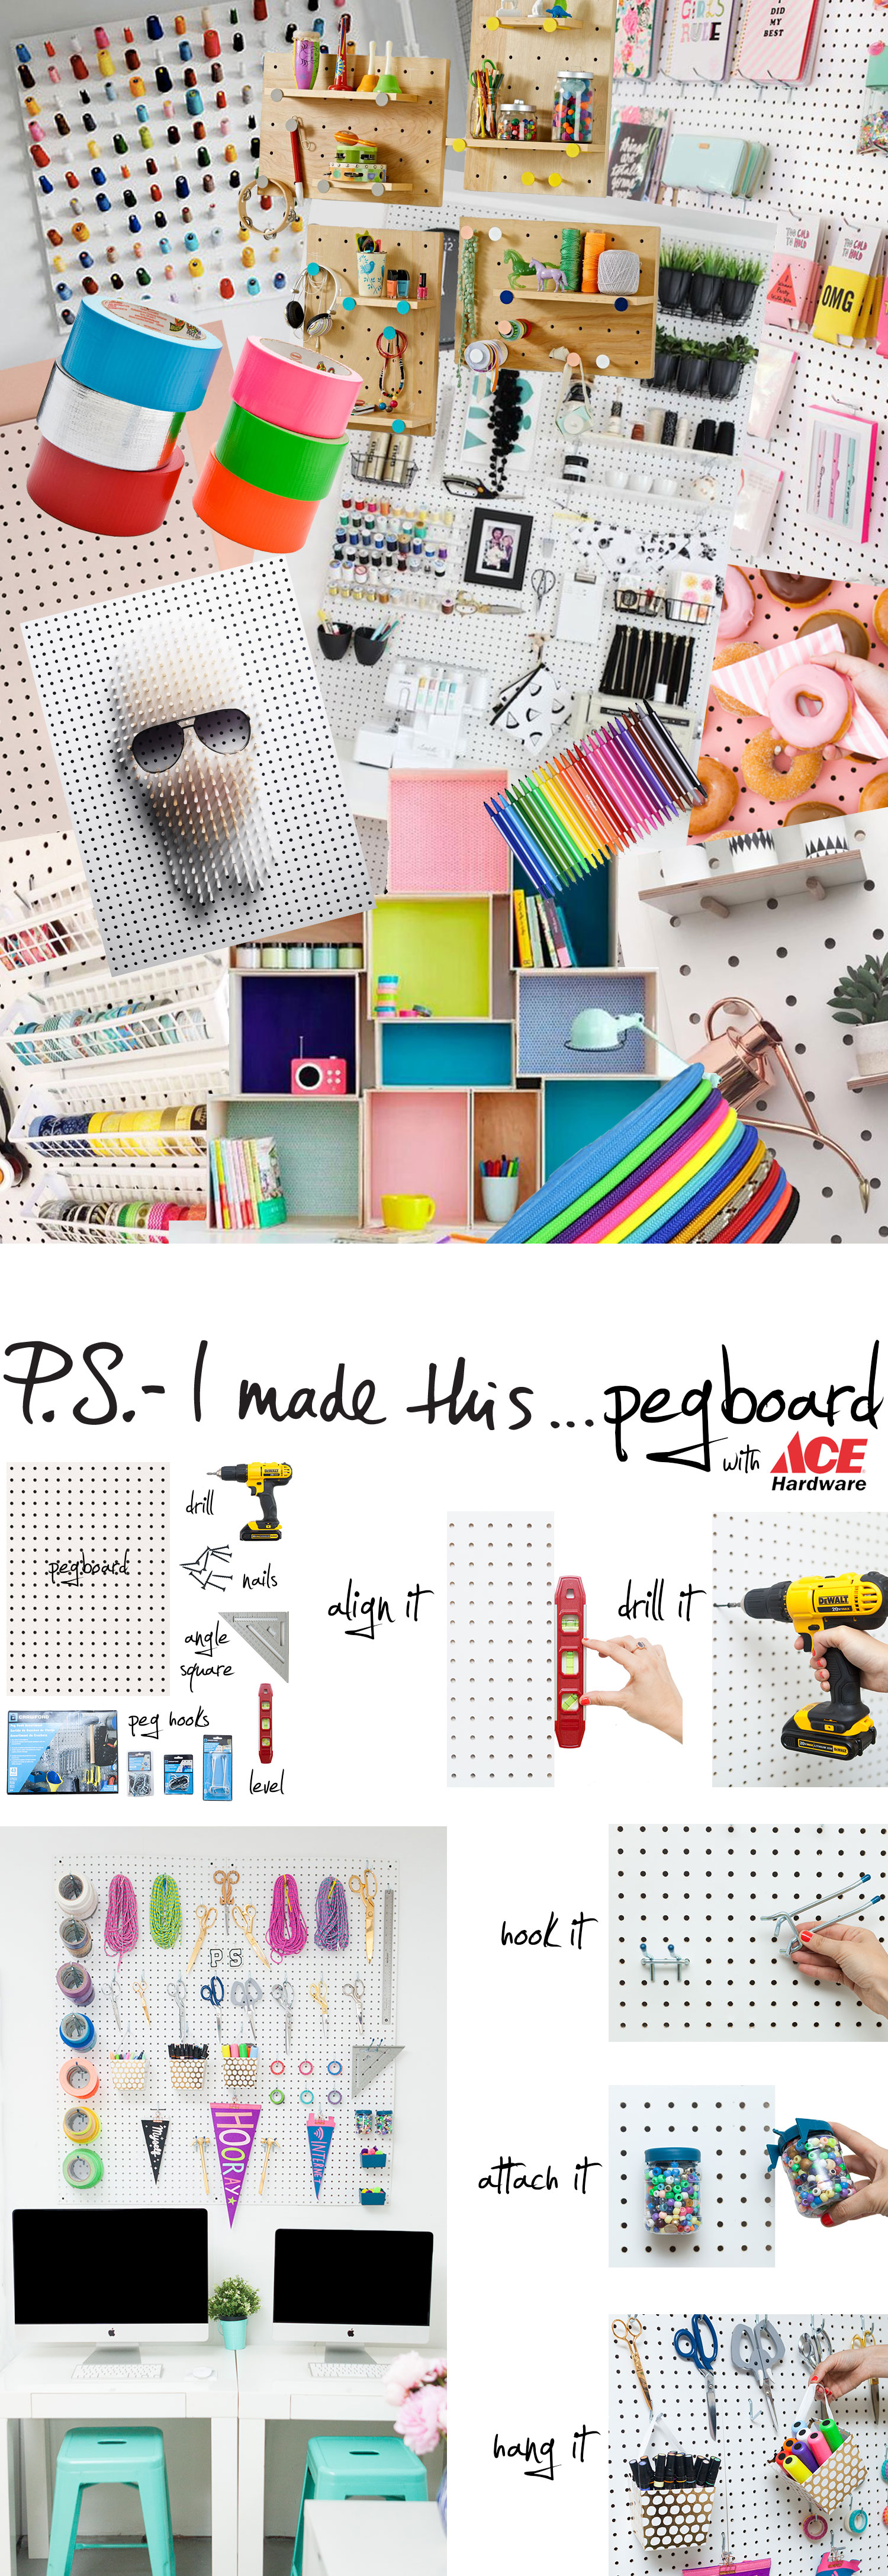 PS_Pegboard